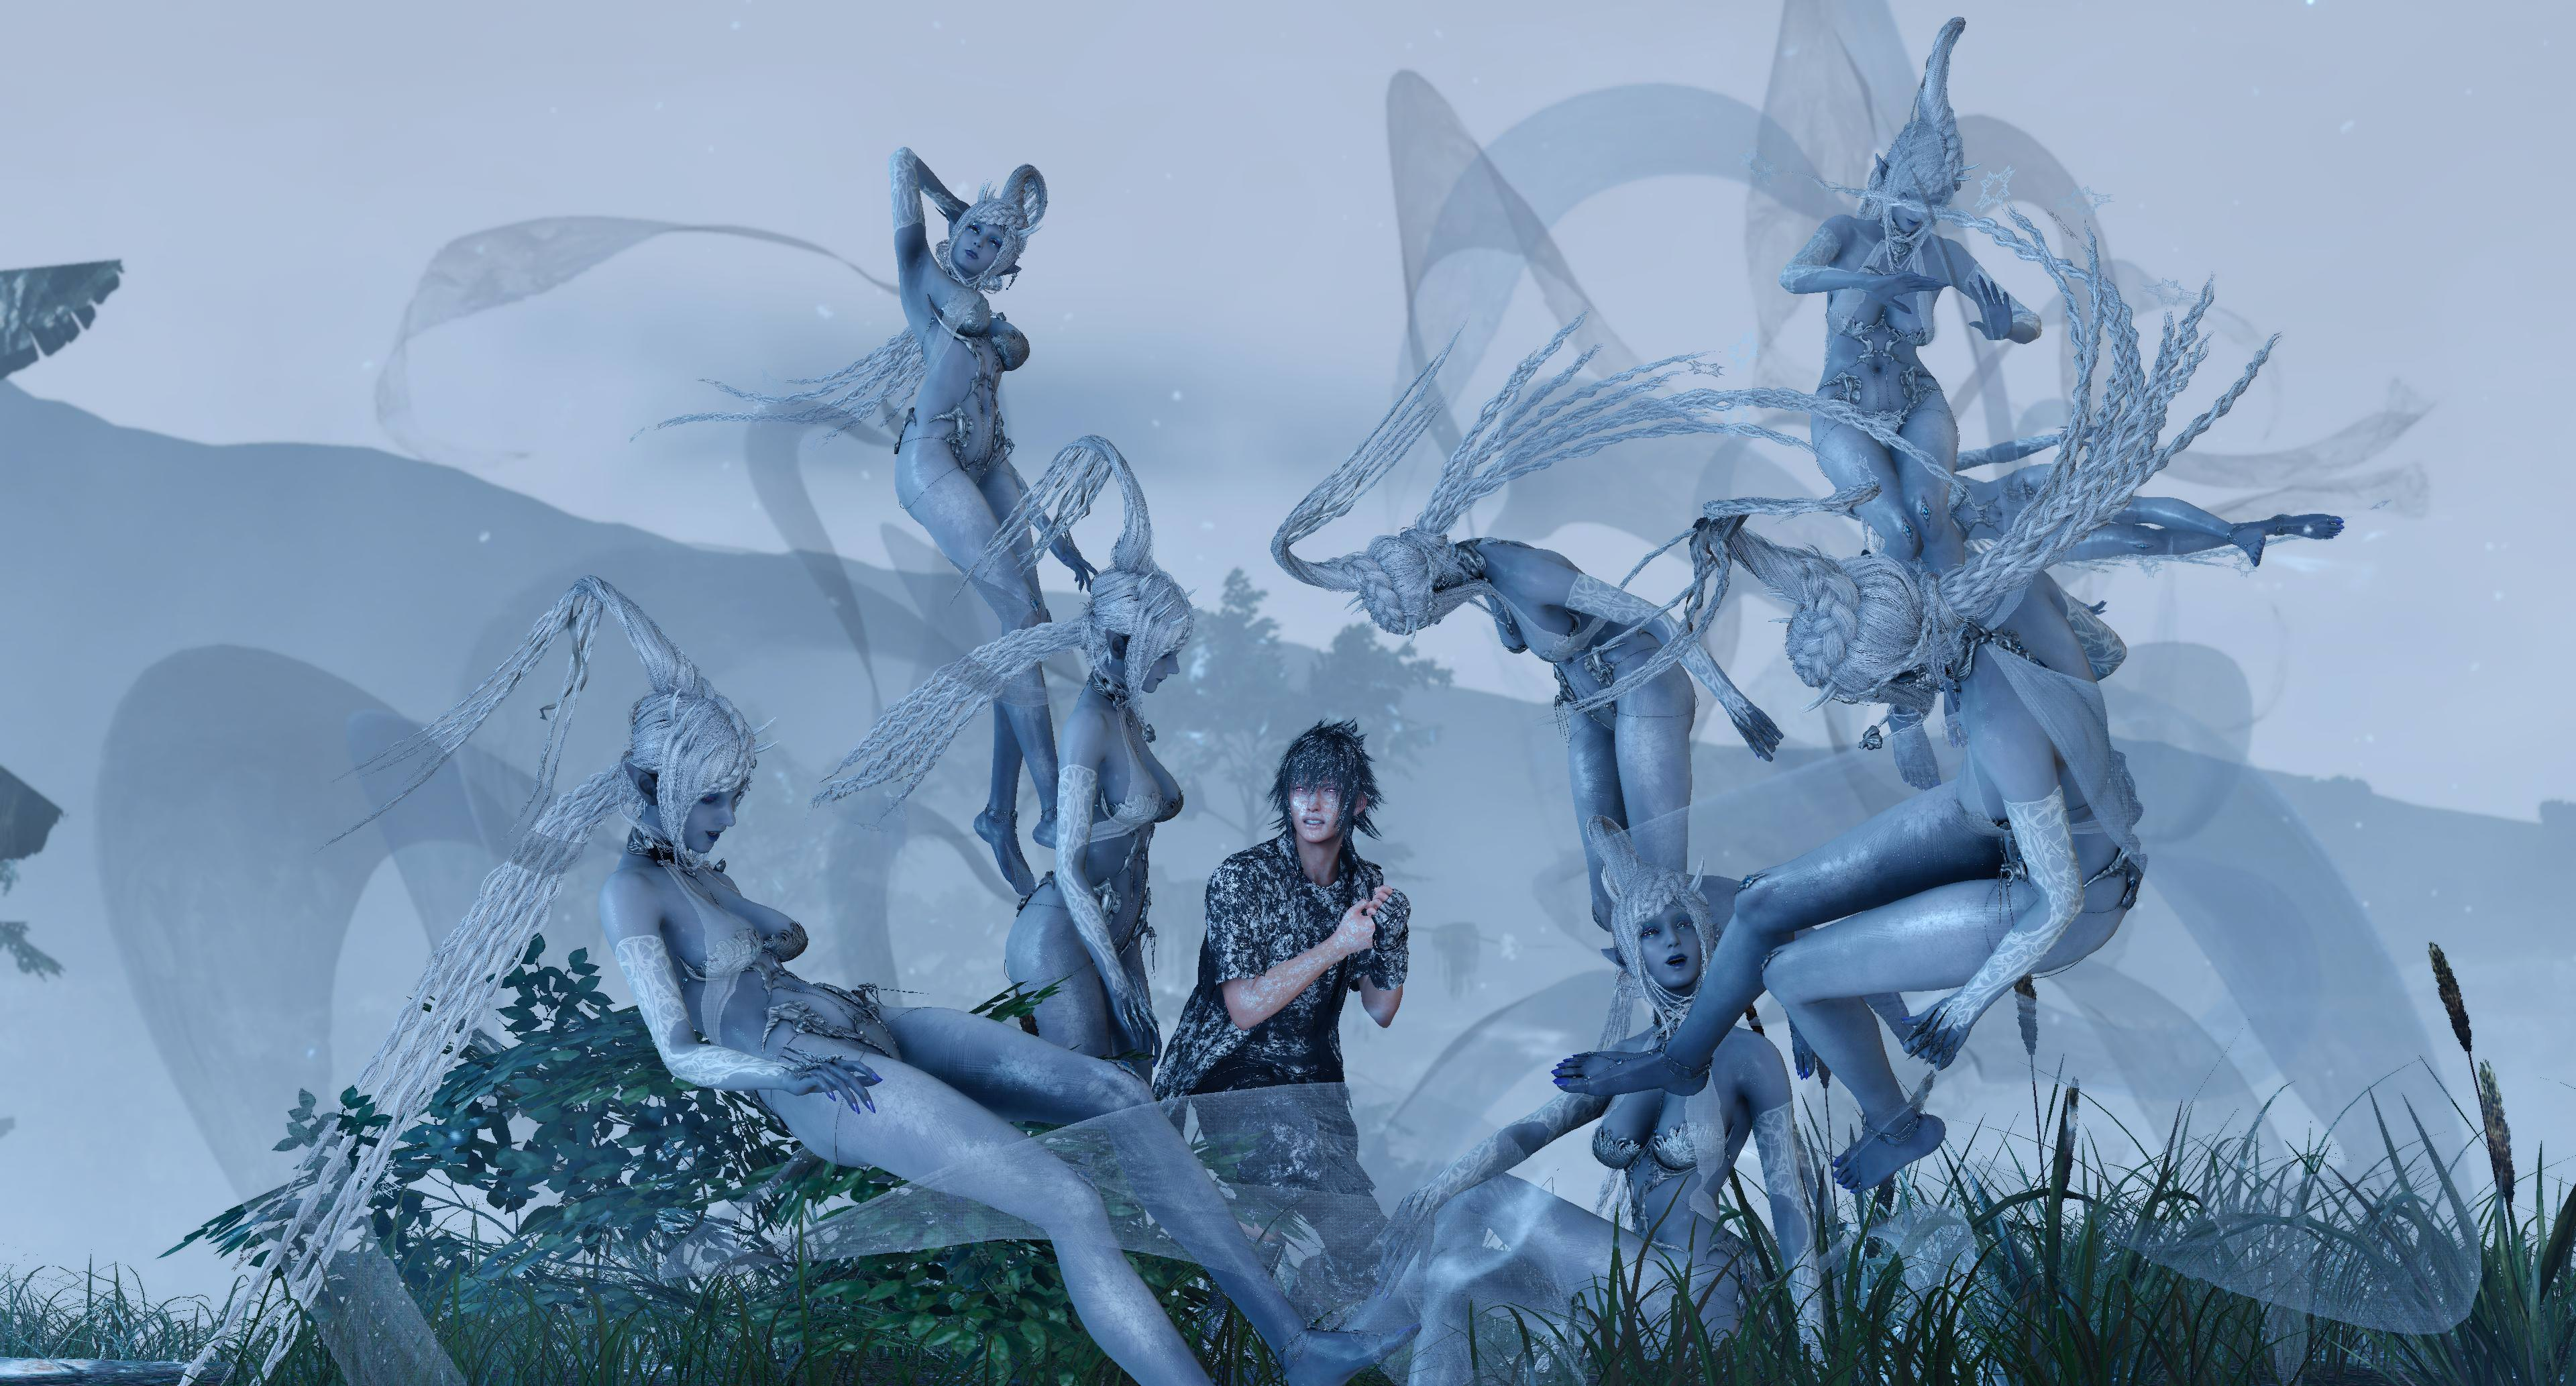 Square Enix cancels most of Final Fantasy XV's new DLC as the game's director resigns screenshot